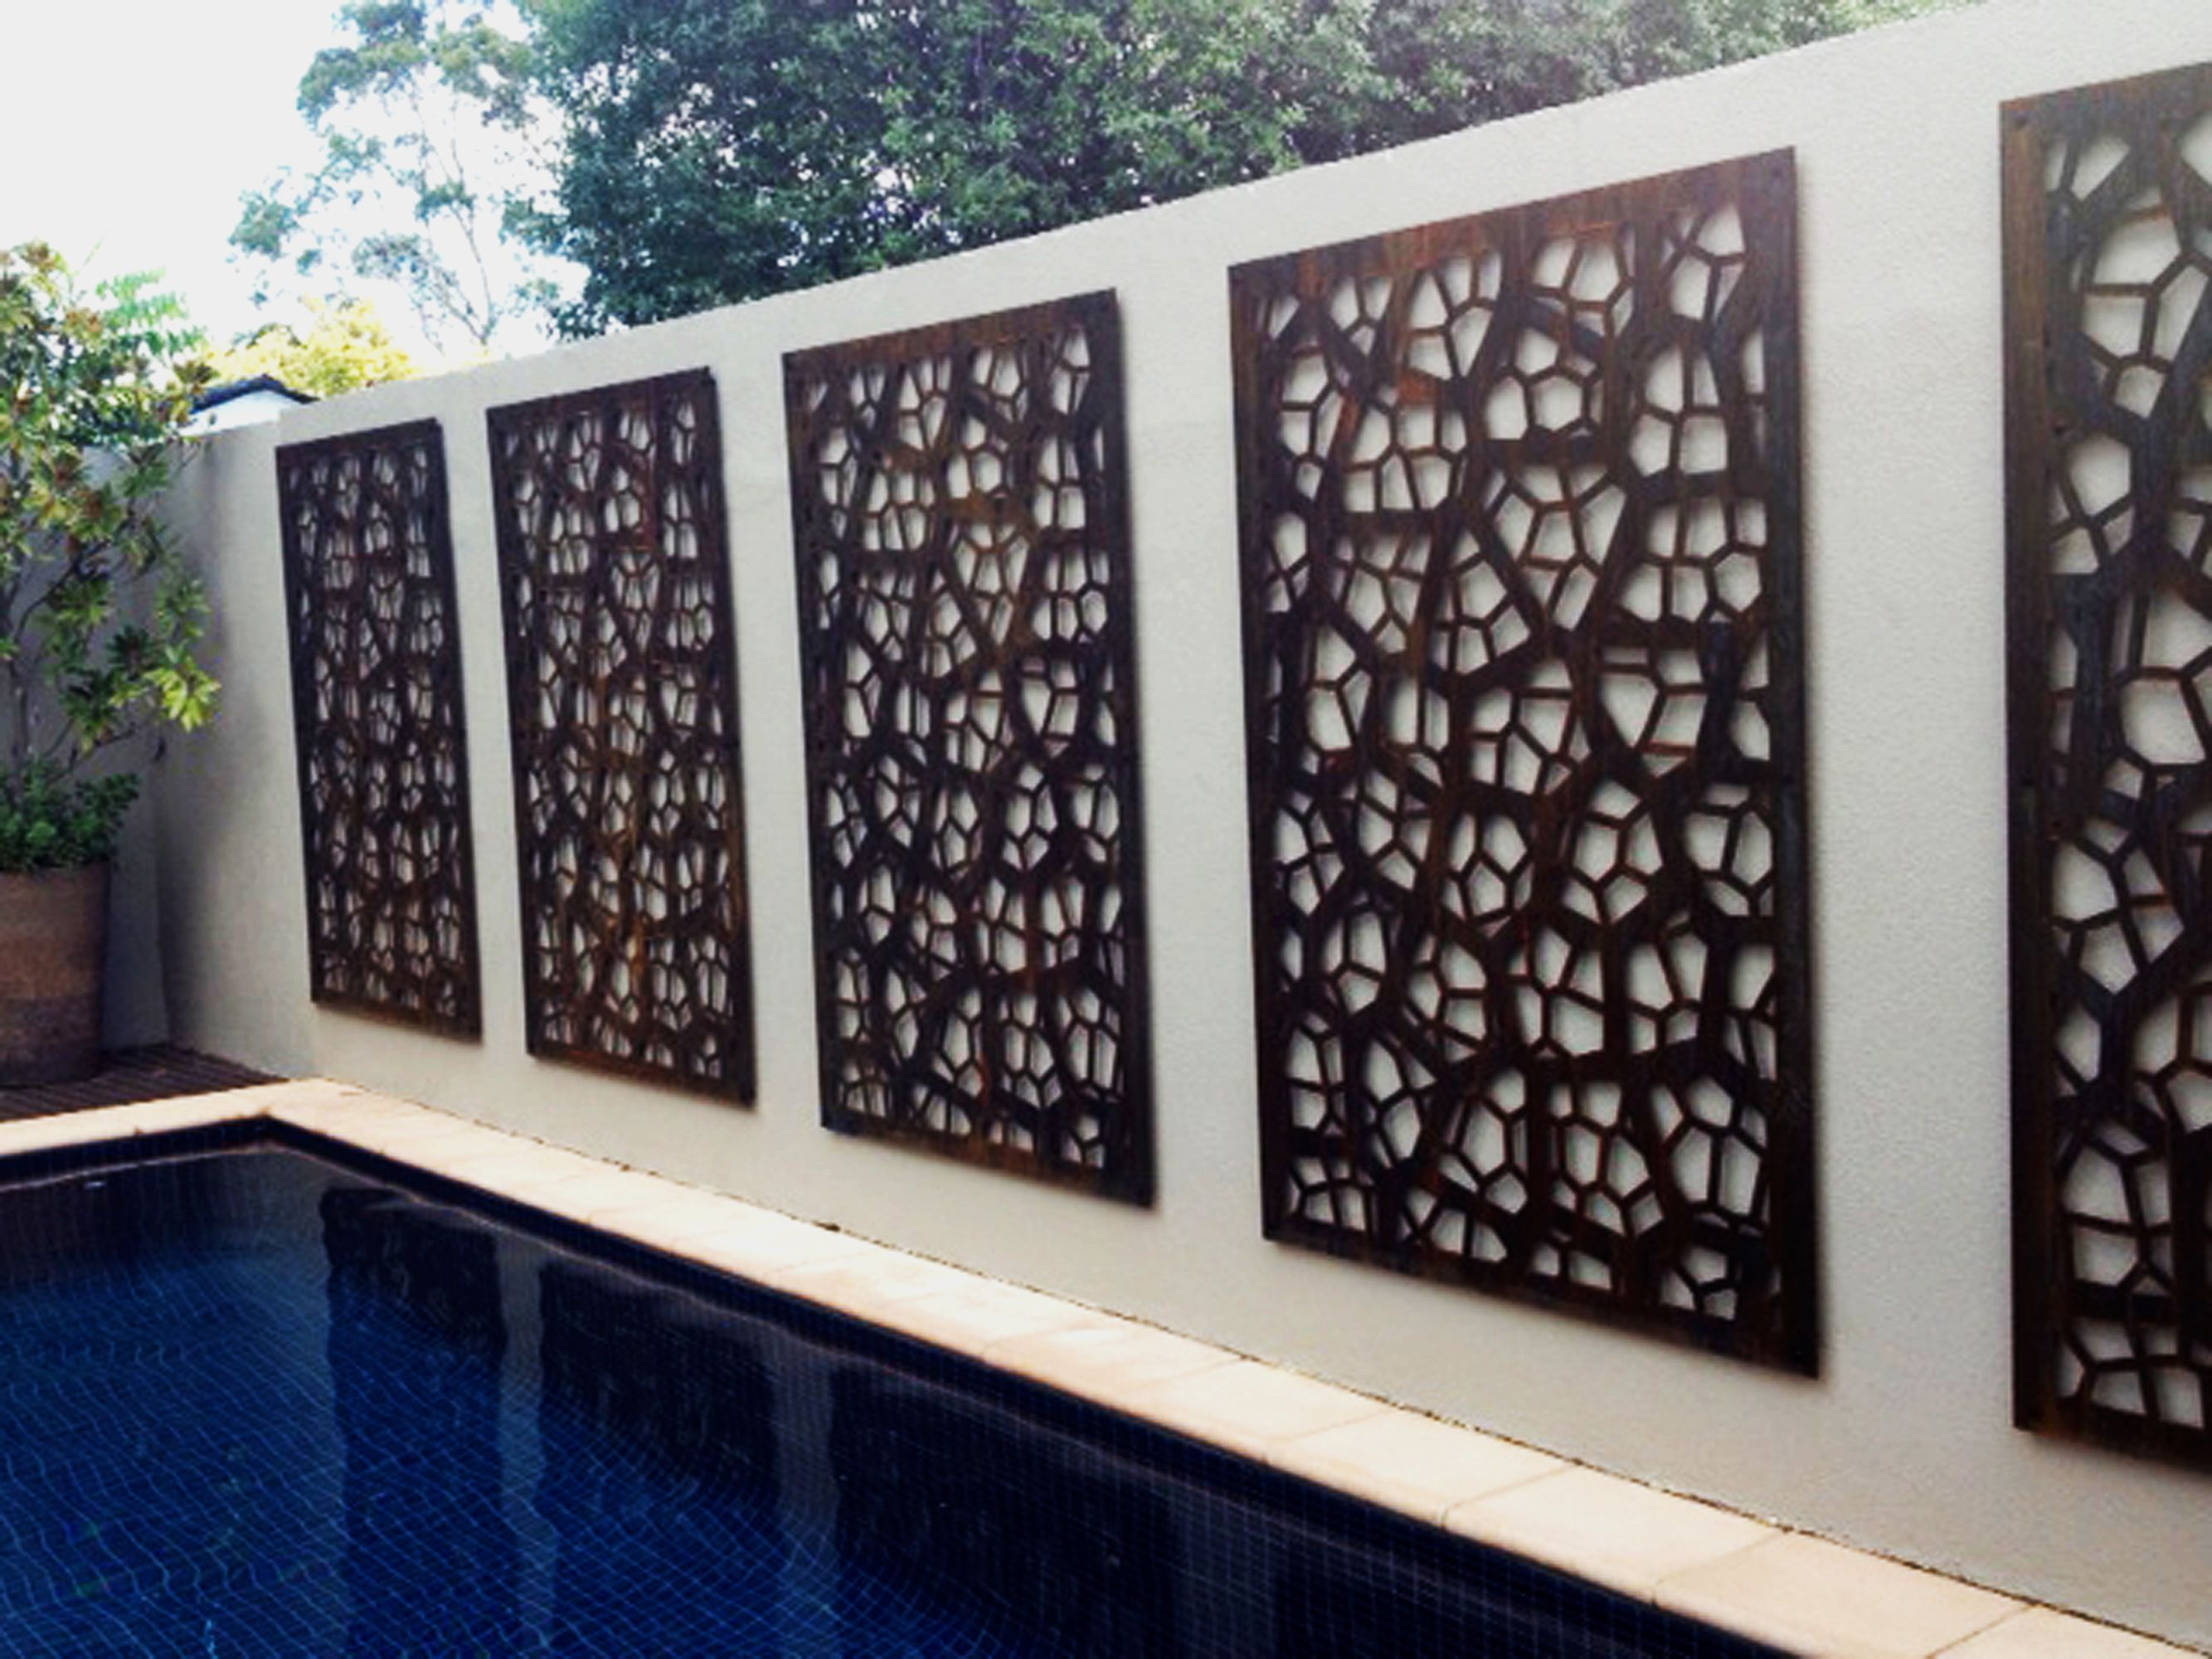 A Pool Wall Is Made Beautiful With Decorative Screens Cut In Corten Our Pretoria Design Homeimprovement Decorativescreens Pooldecor Poolpatios